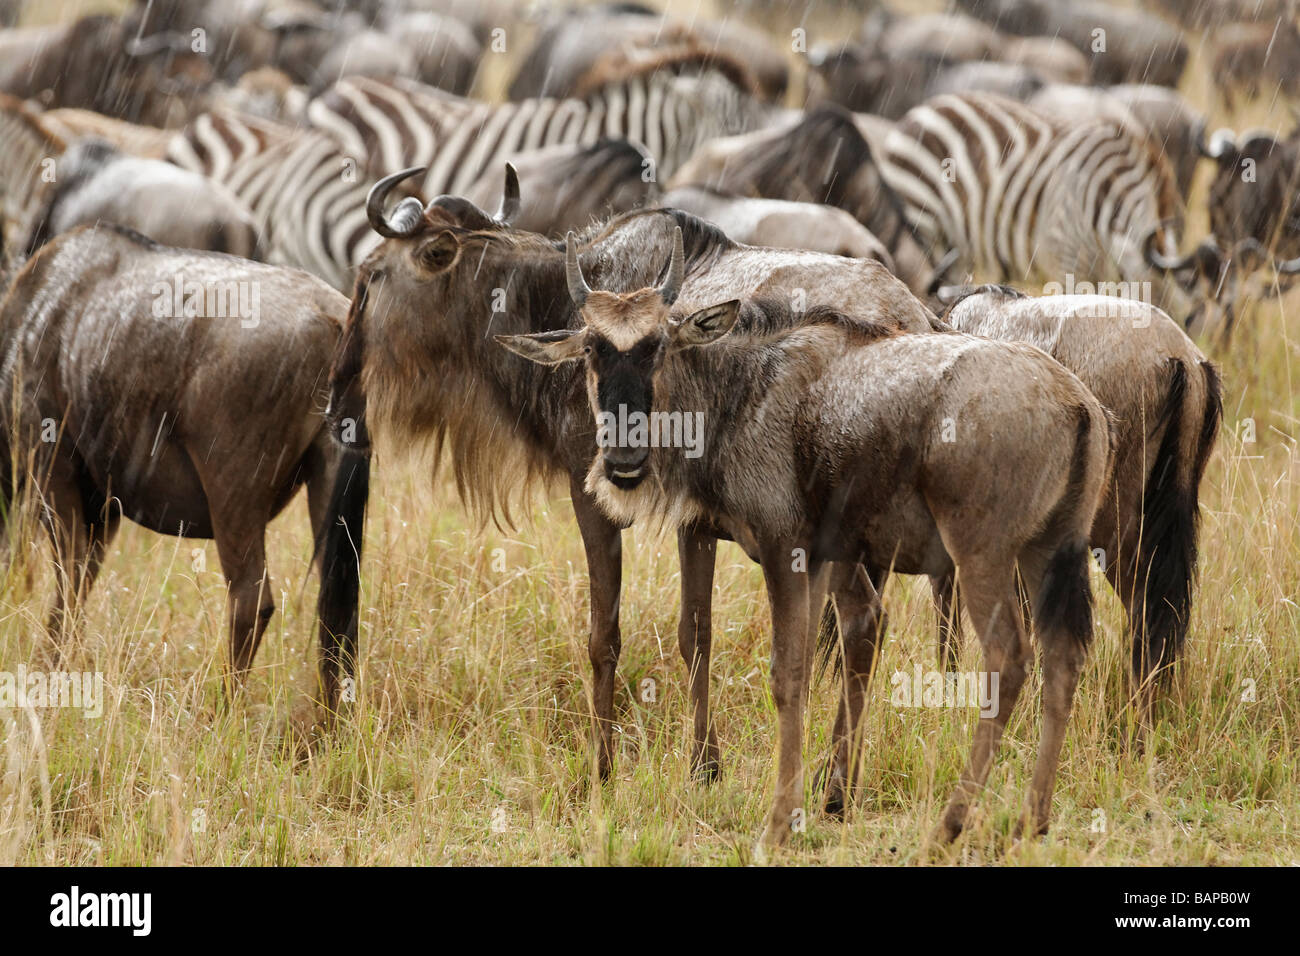 Wildebeest migrate by the thousands through the tall grasses of the Masai Mara National Reserve in Kenya. - Stock Image